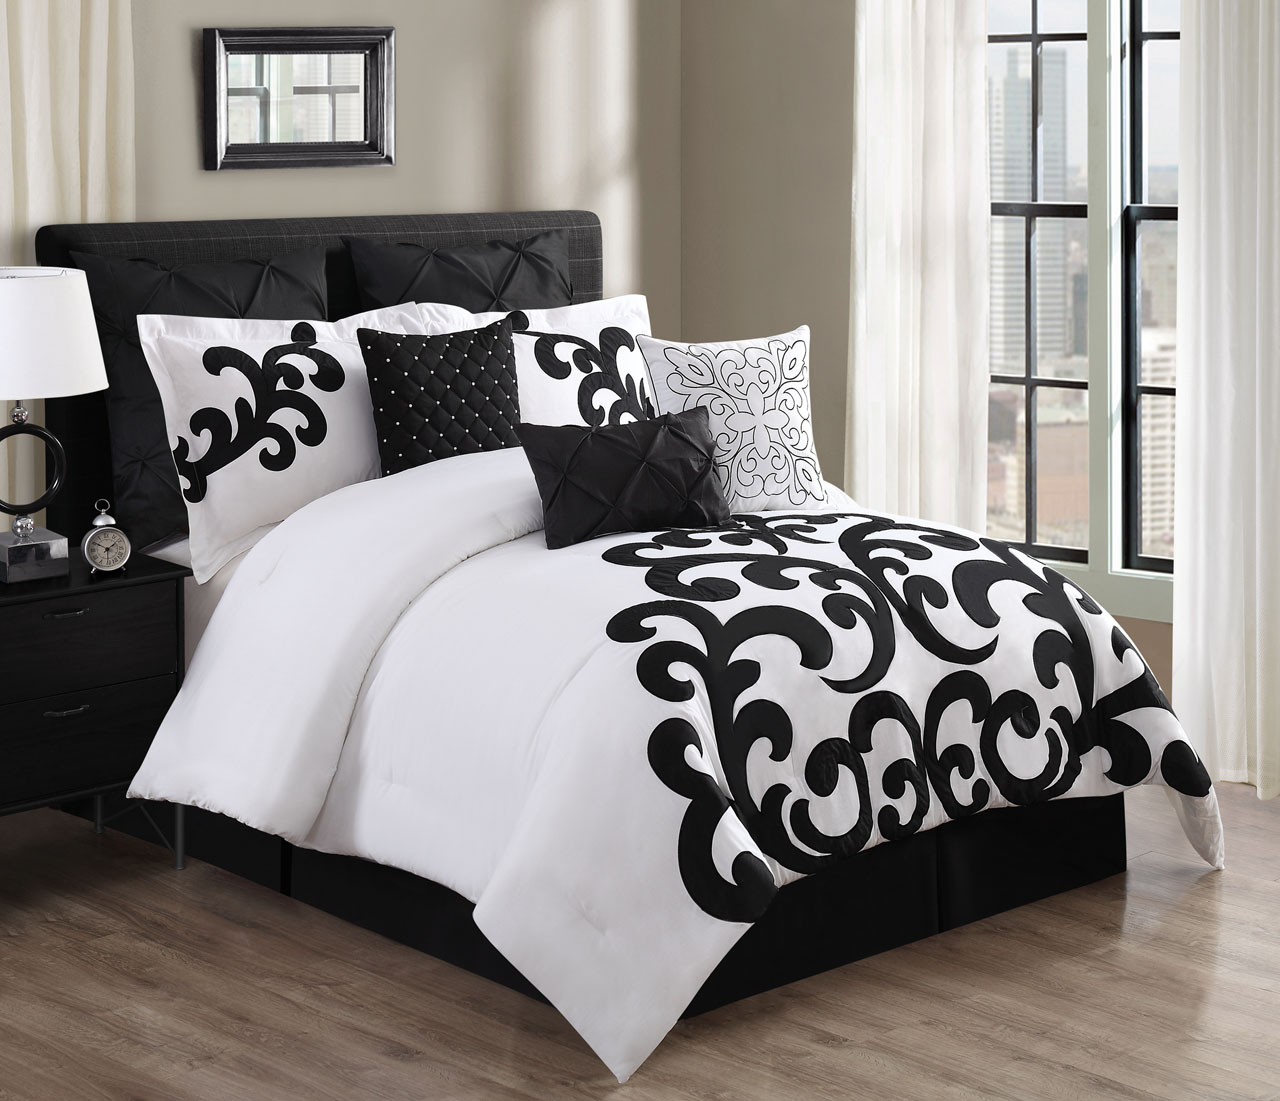 9 Piece Empress 100% Cotton Black/White Comforter Set Queen | eBay : cotton queen quilts - Adamdwight.com